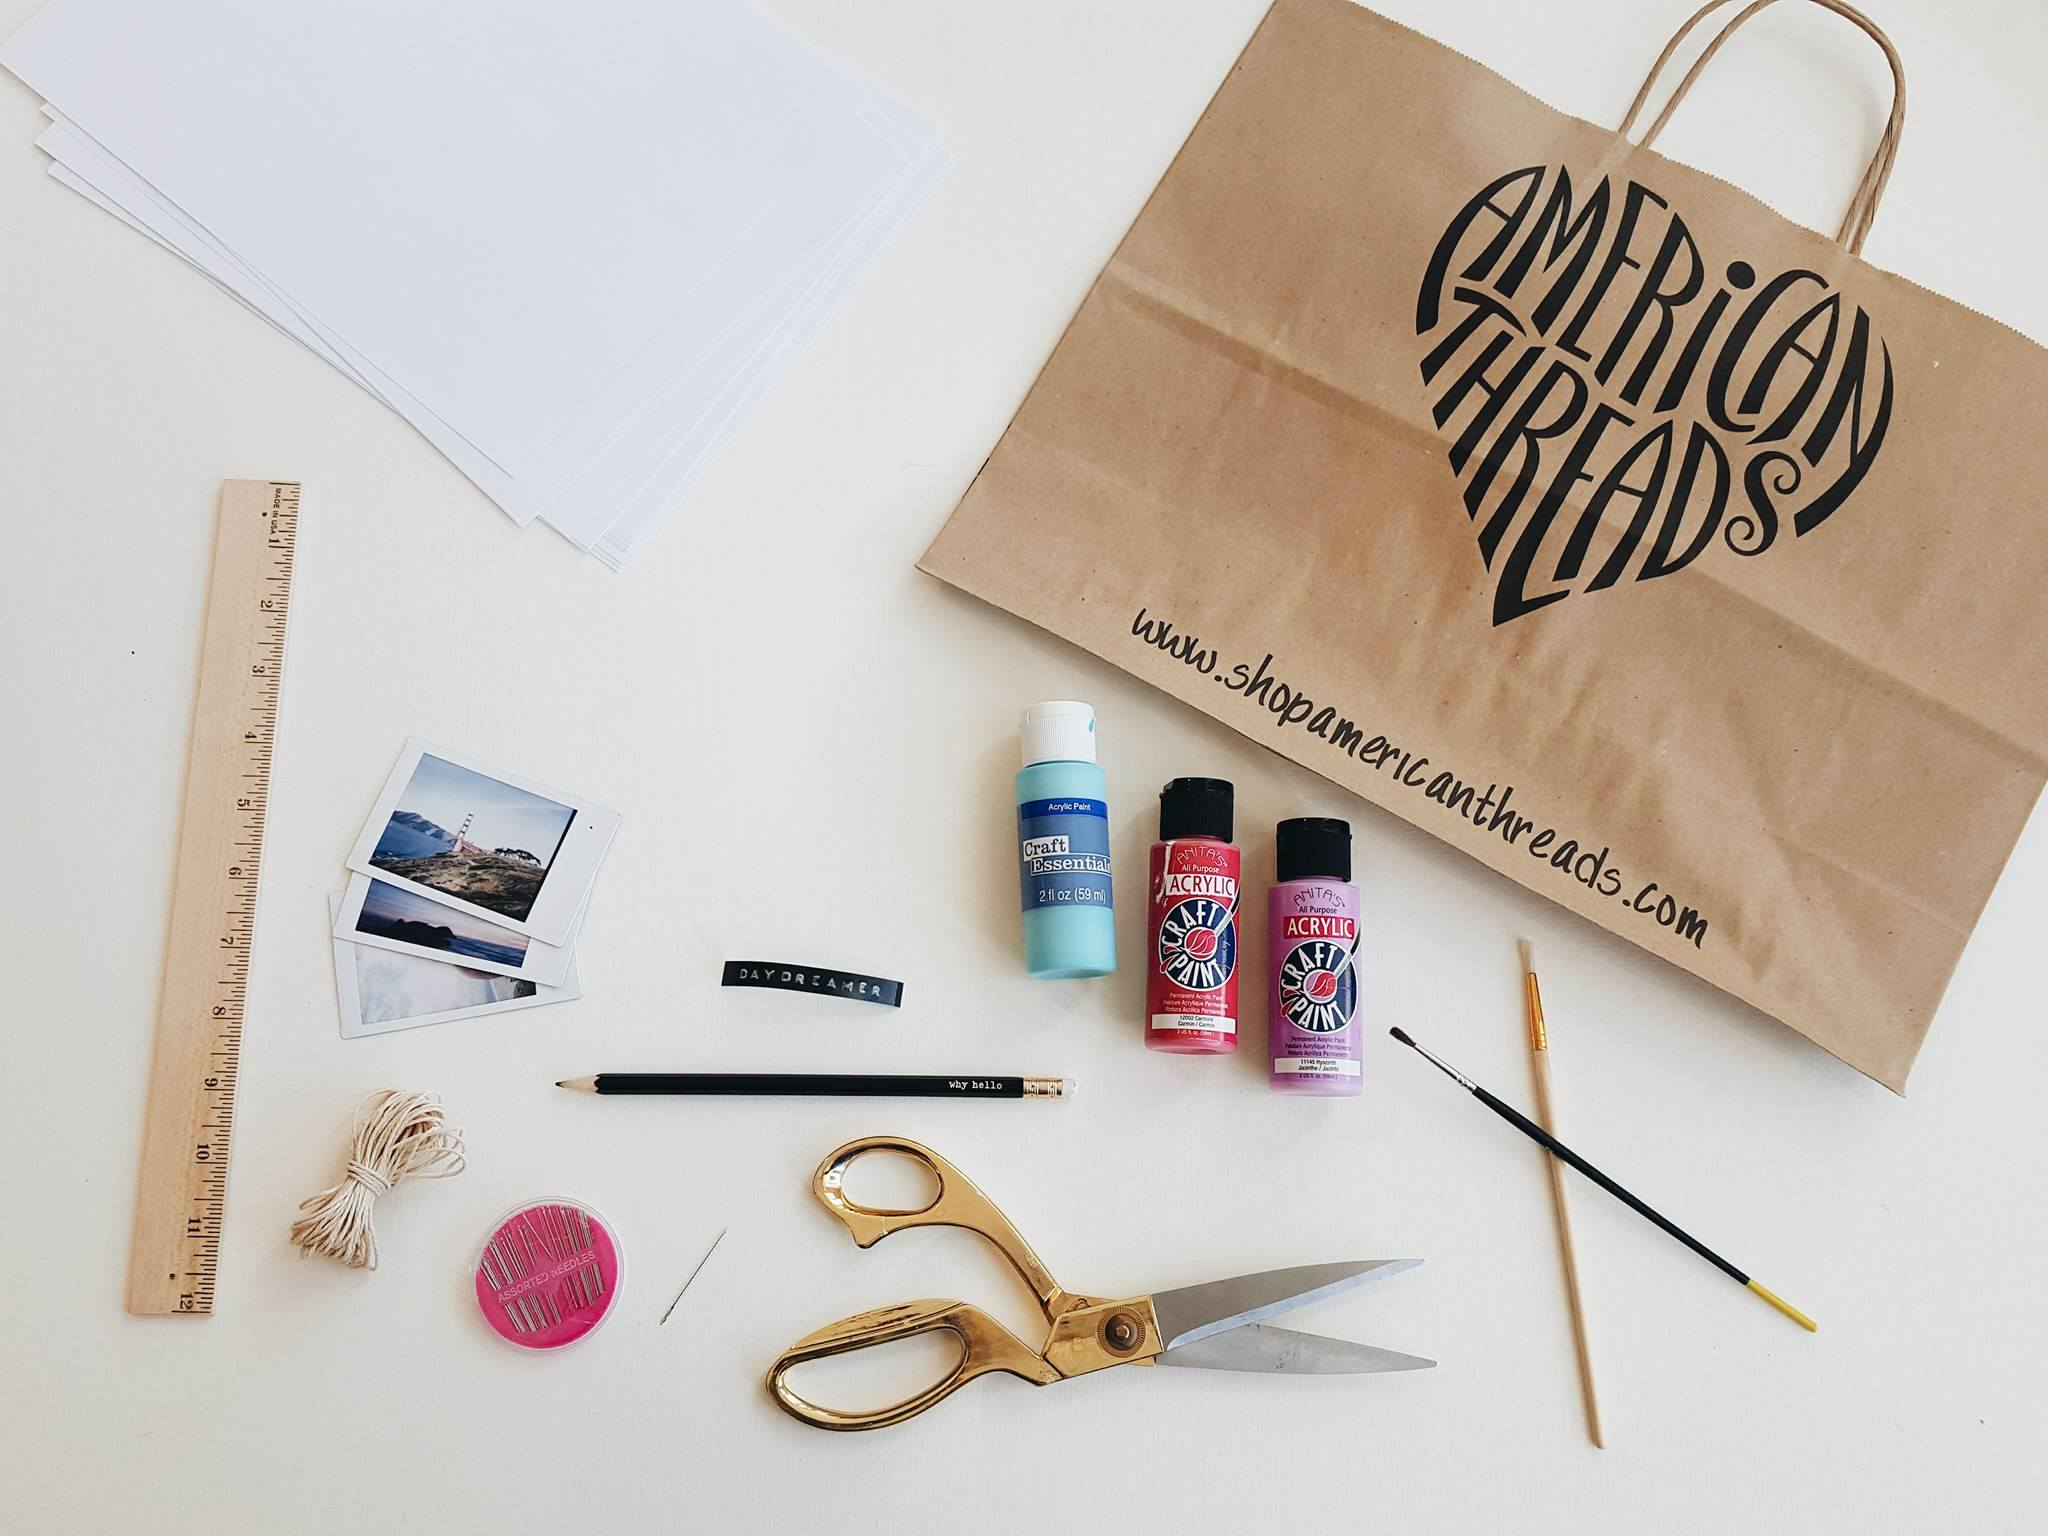 SUPPLIES:  -Recycled Brown Shopping Bag   -White Office Paper   -Scissors  -Ruler   Needle & String   -Pencil   -Paint   -Paint Brushes  -Misc Collage Items (photos, tickets, labels, flowers, magazine scraps, etc)